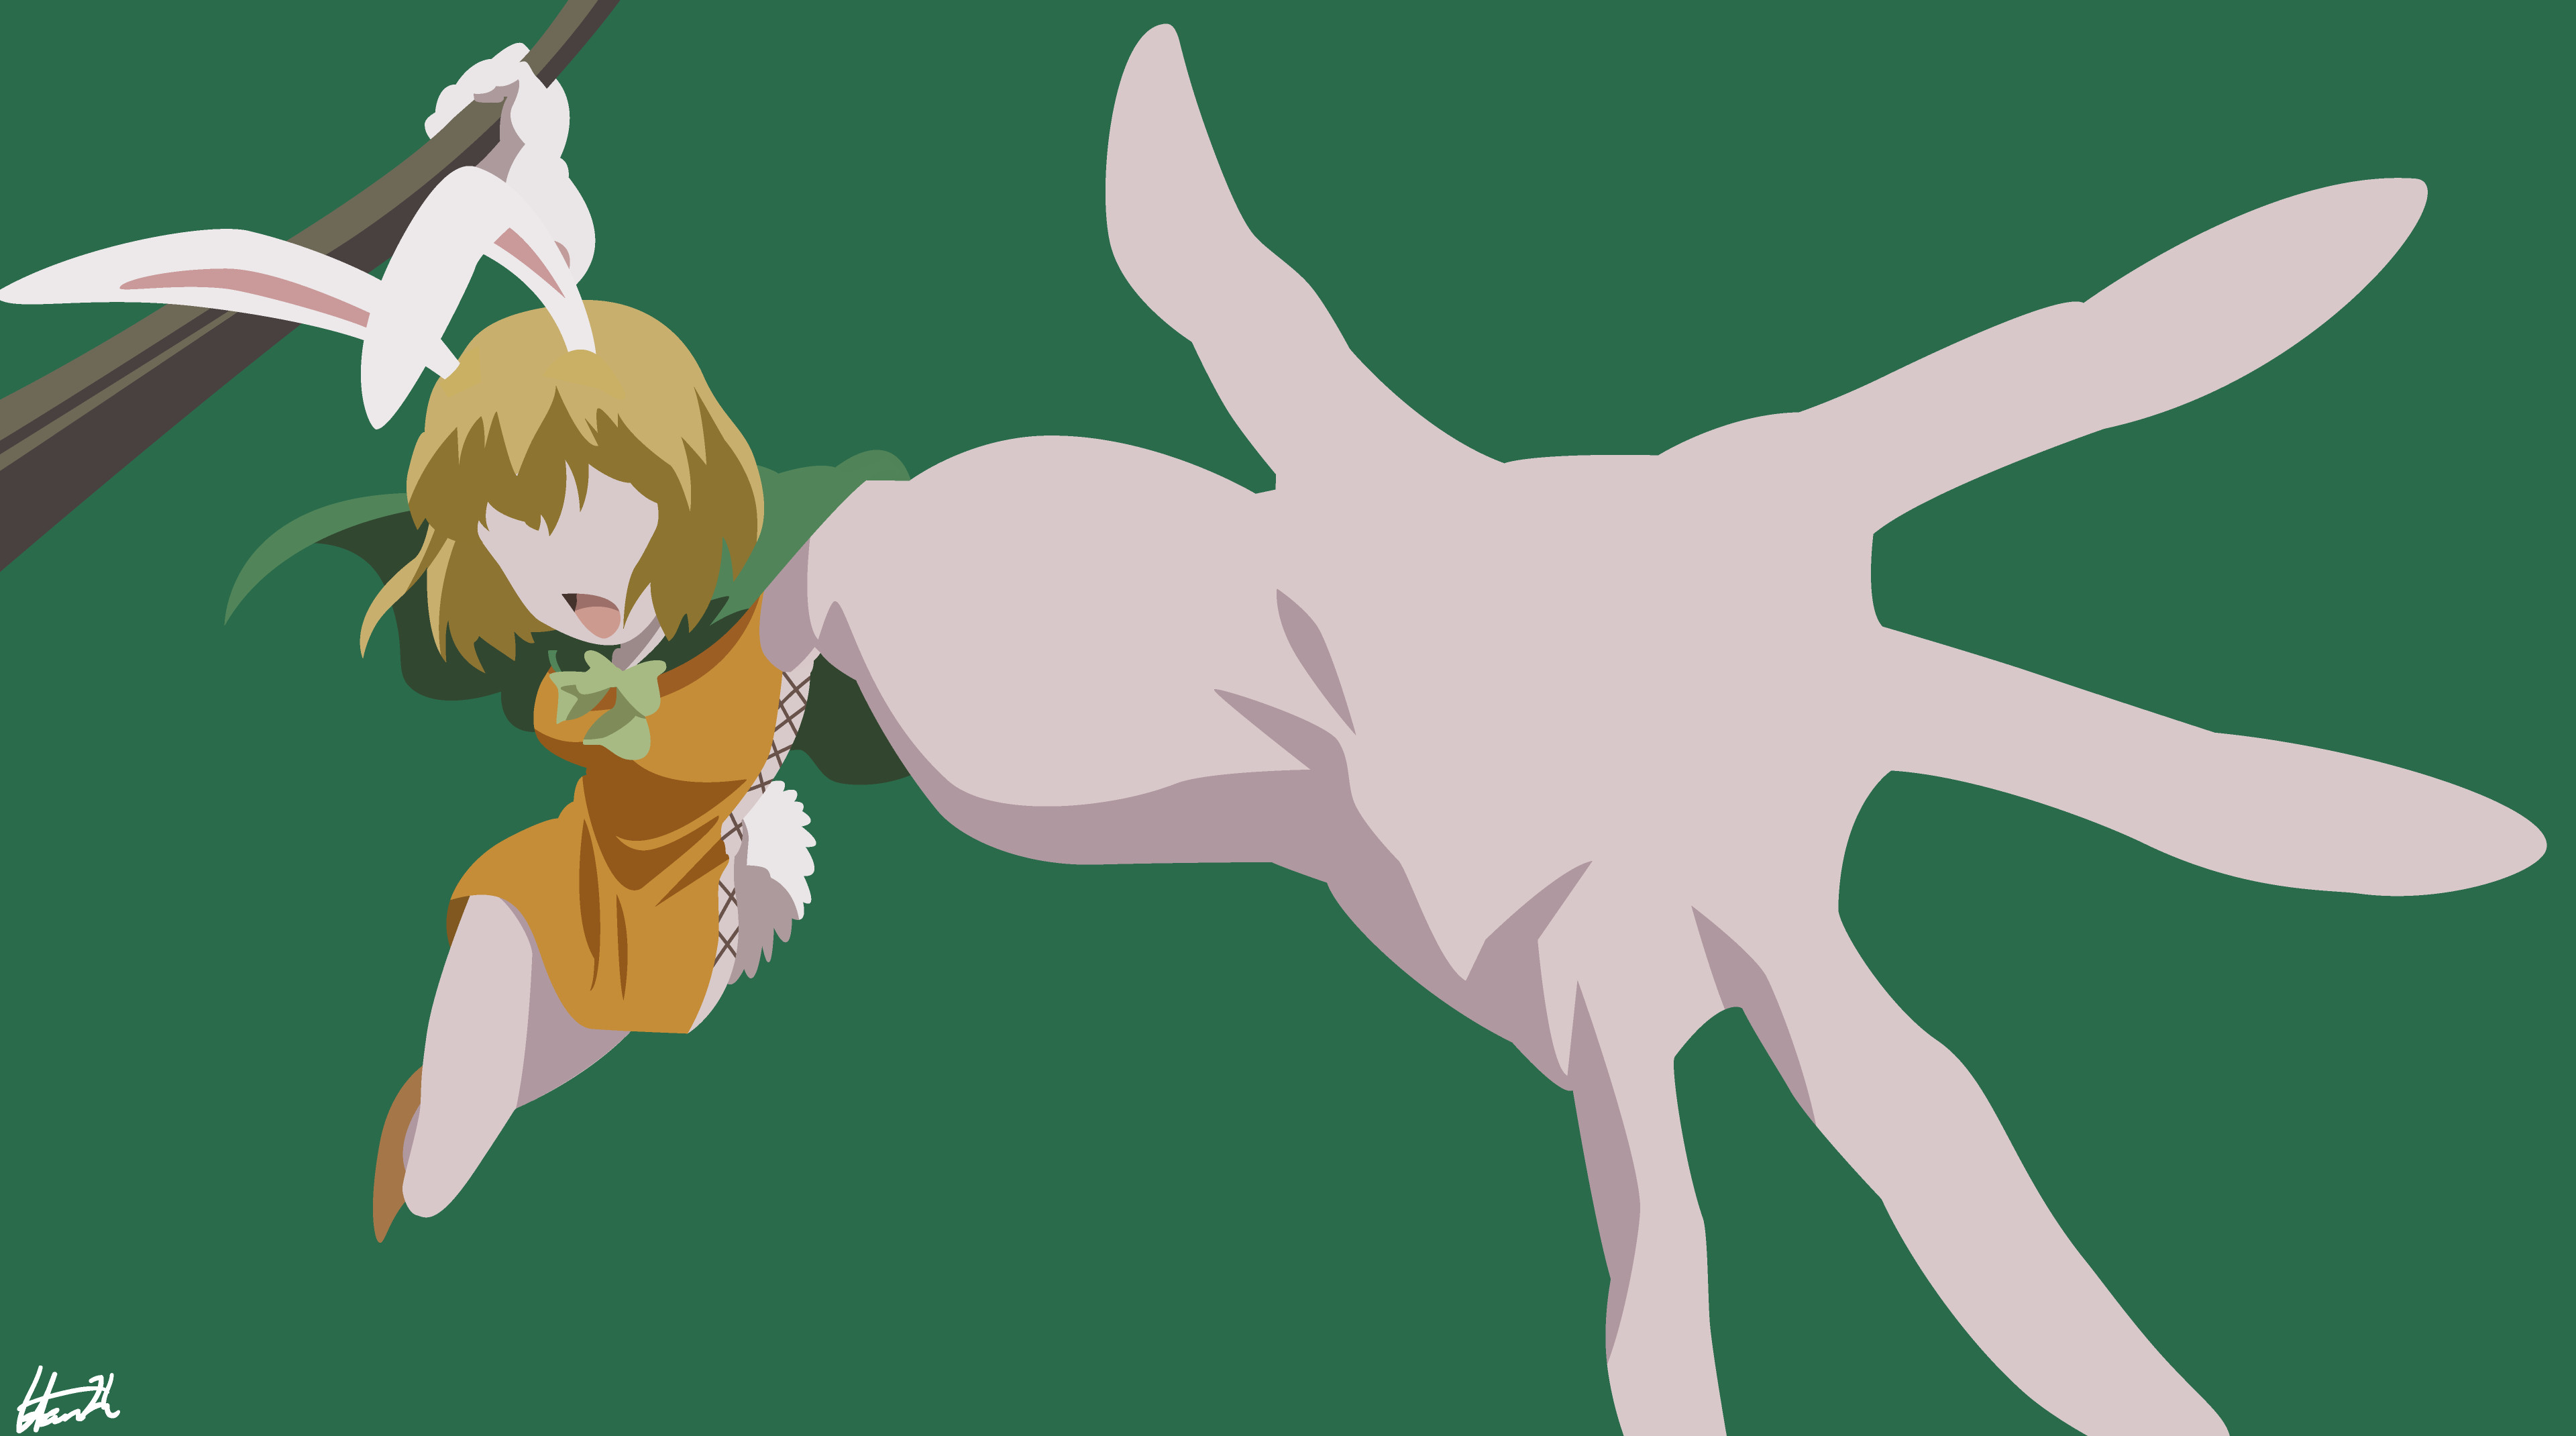 Carrot One Piece  Carrot e Piece Minimalist Wallpaper by HansZh on